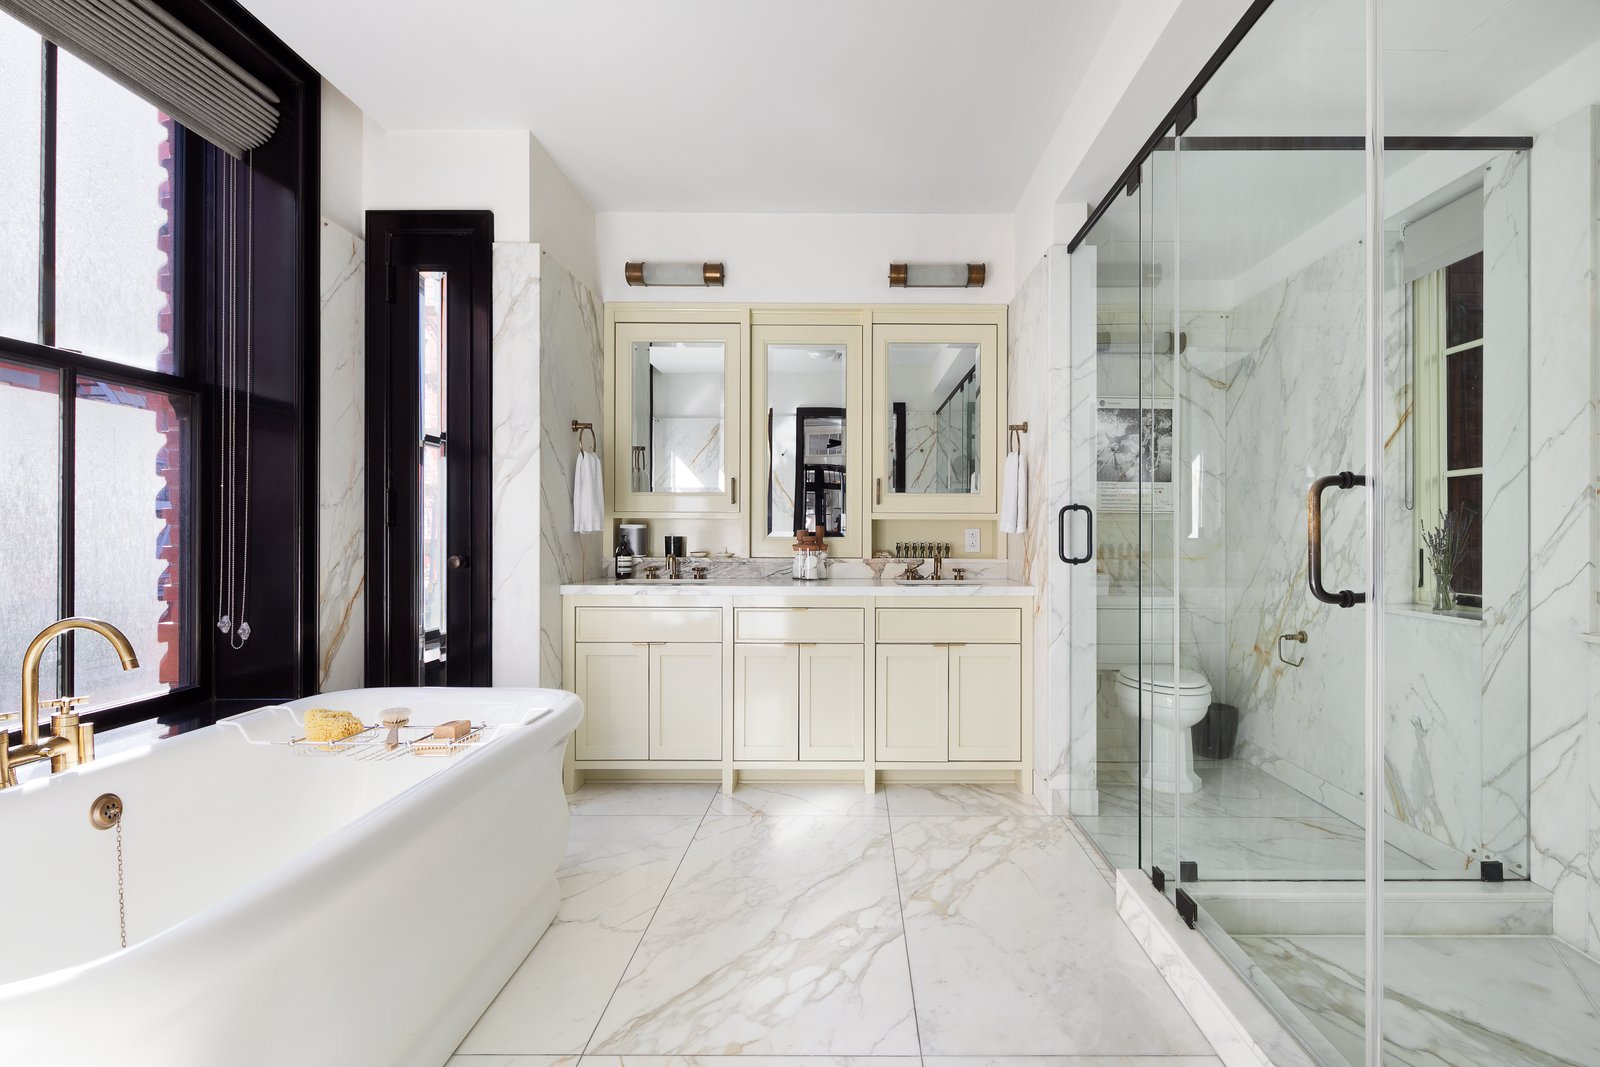 """Bath Room, Freestanding Tub, Full Shower, Marble Floor, Enclosed Shower, and Two Piece Toilet Roman & Williams designed the bathrooms with """"the look and feel of a grand European hotel"""". The double vanity is painted a high-glass cream and slabs of Calacatta marble is mixed with brass fixtures makes the master bath shine.  Photo 6 of 10 in A Beautifully Bespoke Condo in Roman & Williams' Coveted Nolita Building Lists For $7M"""